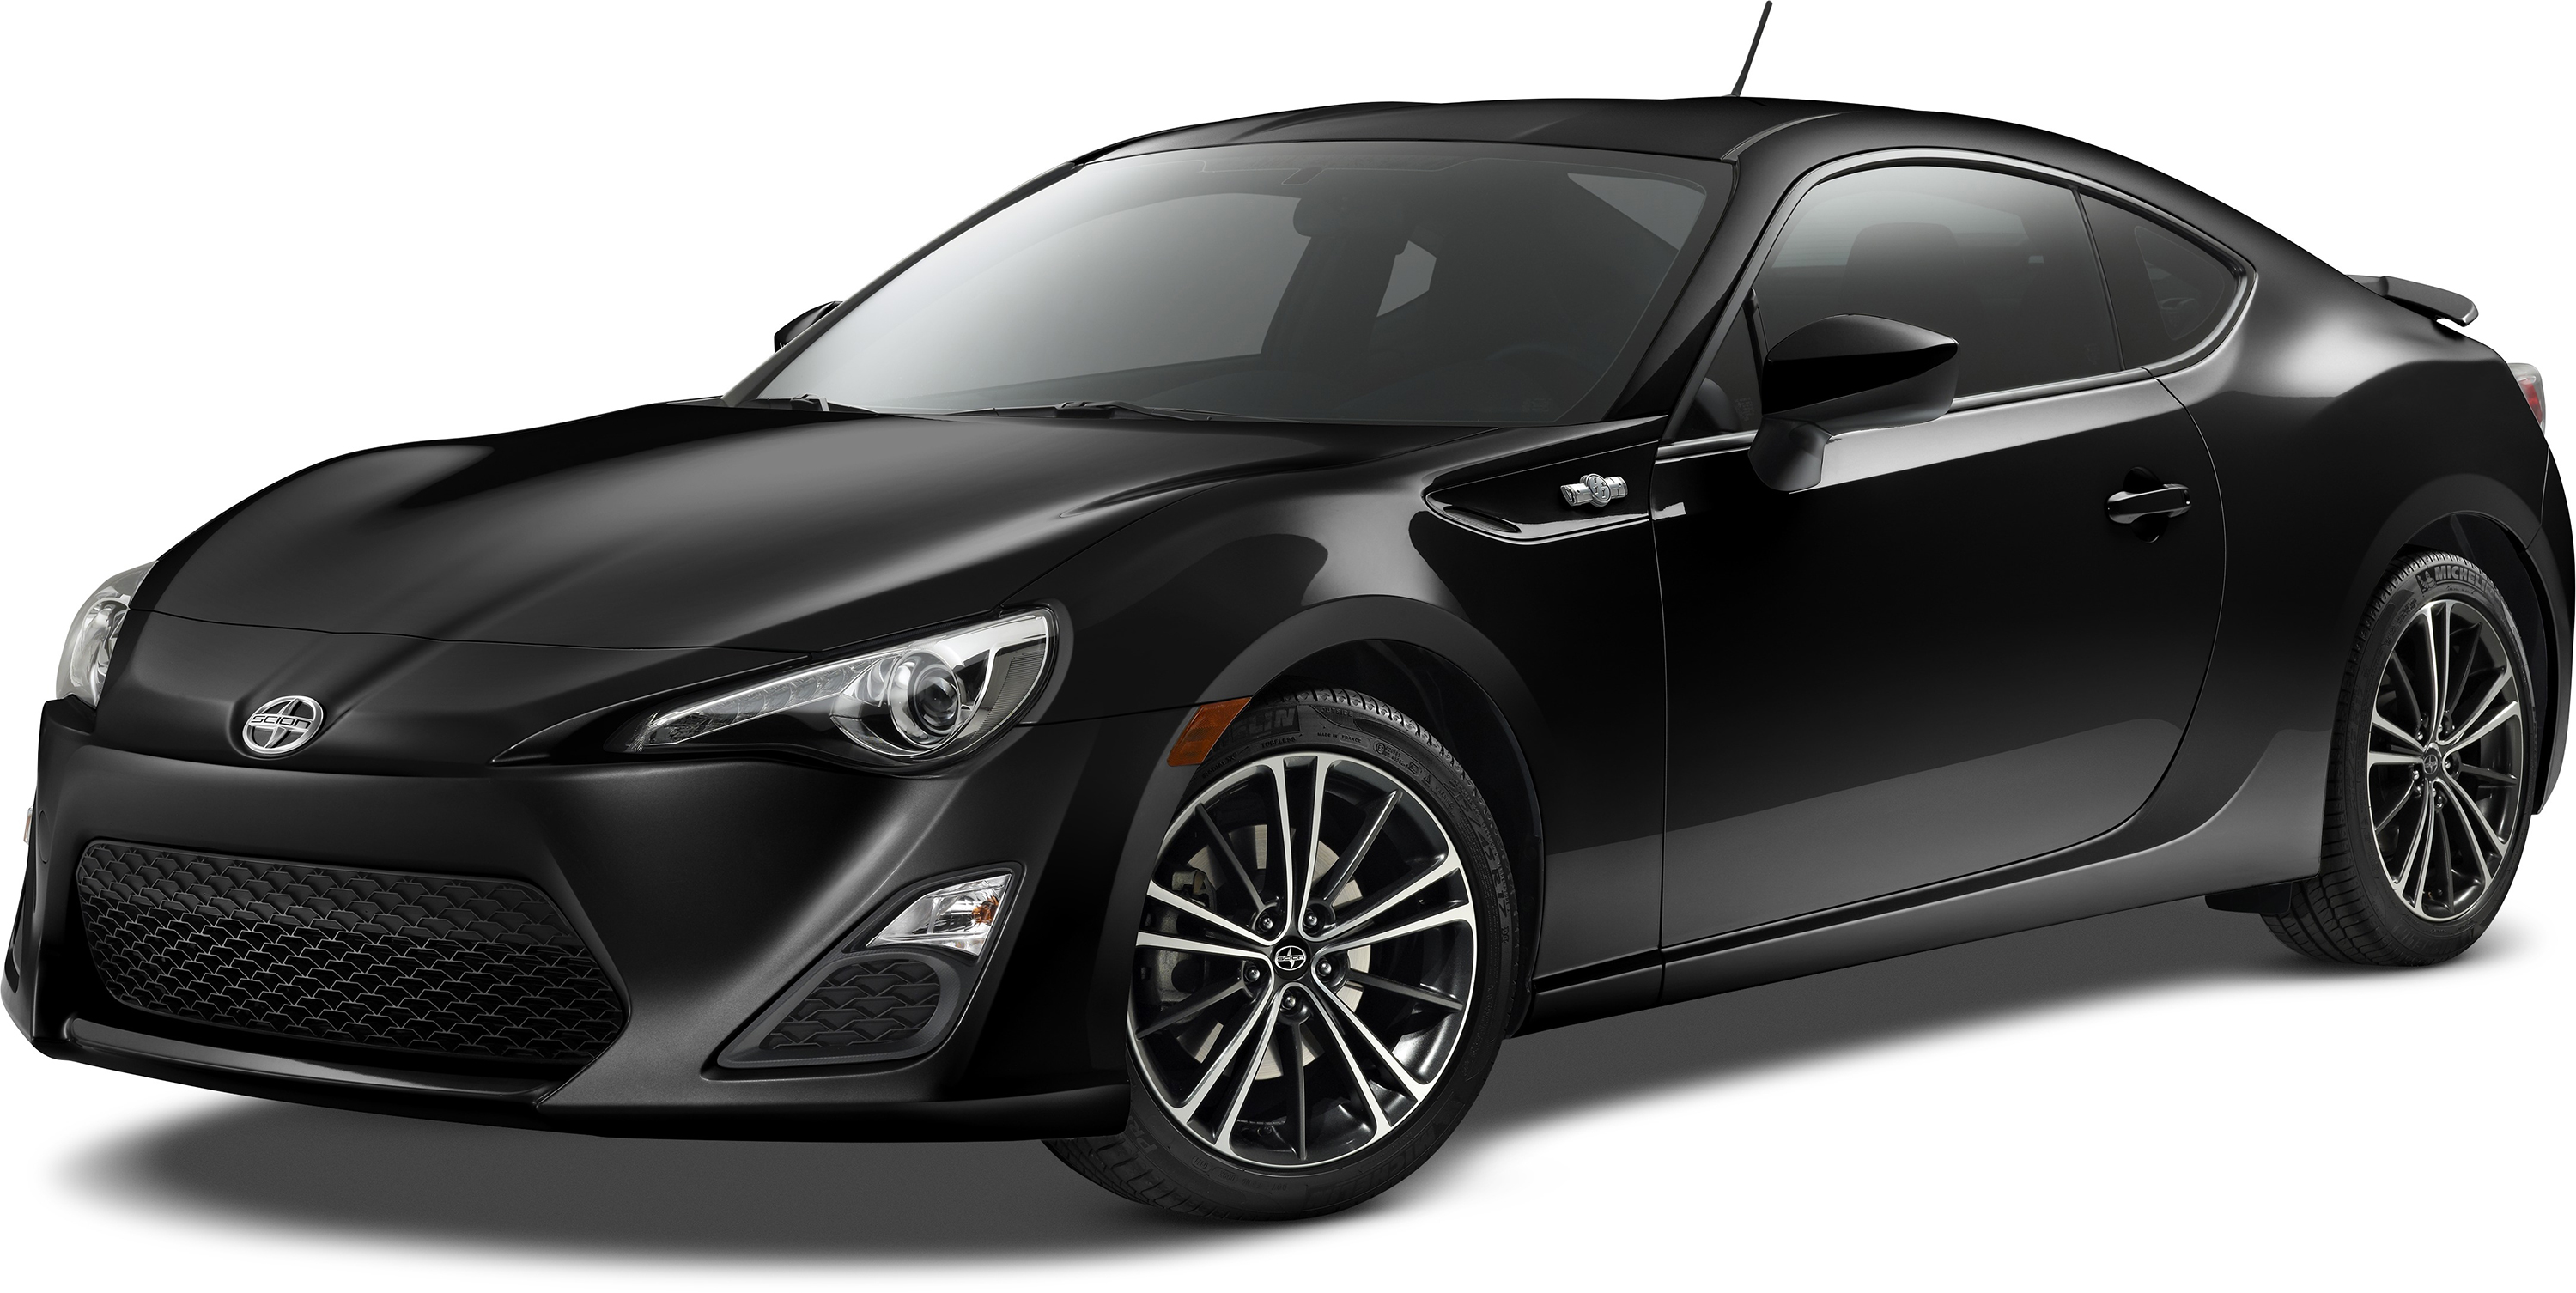 Scion Adds Luxury To Fr S With Monogram Series